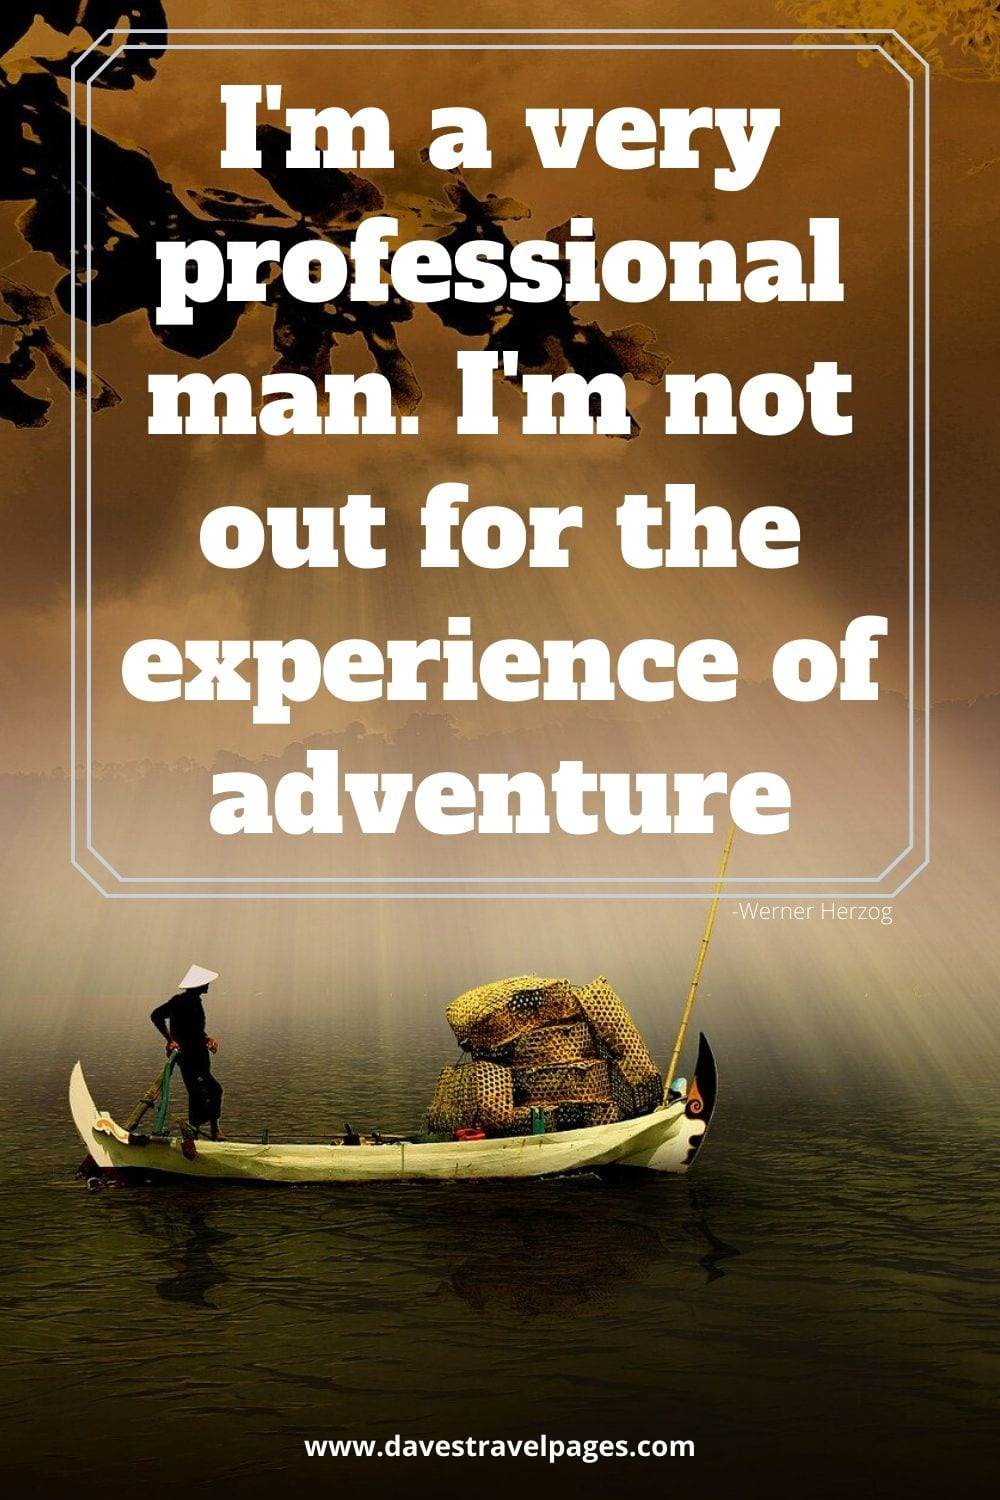 I'm a very professional man. I'm not out for the experience of adventure. Werner Herzog